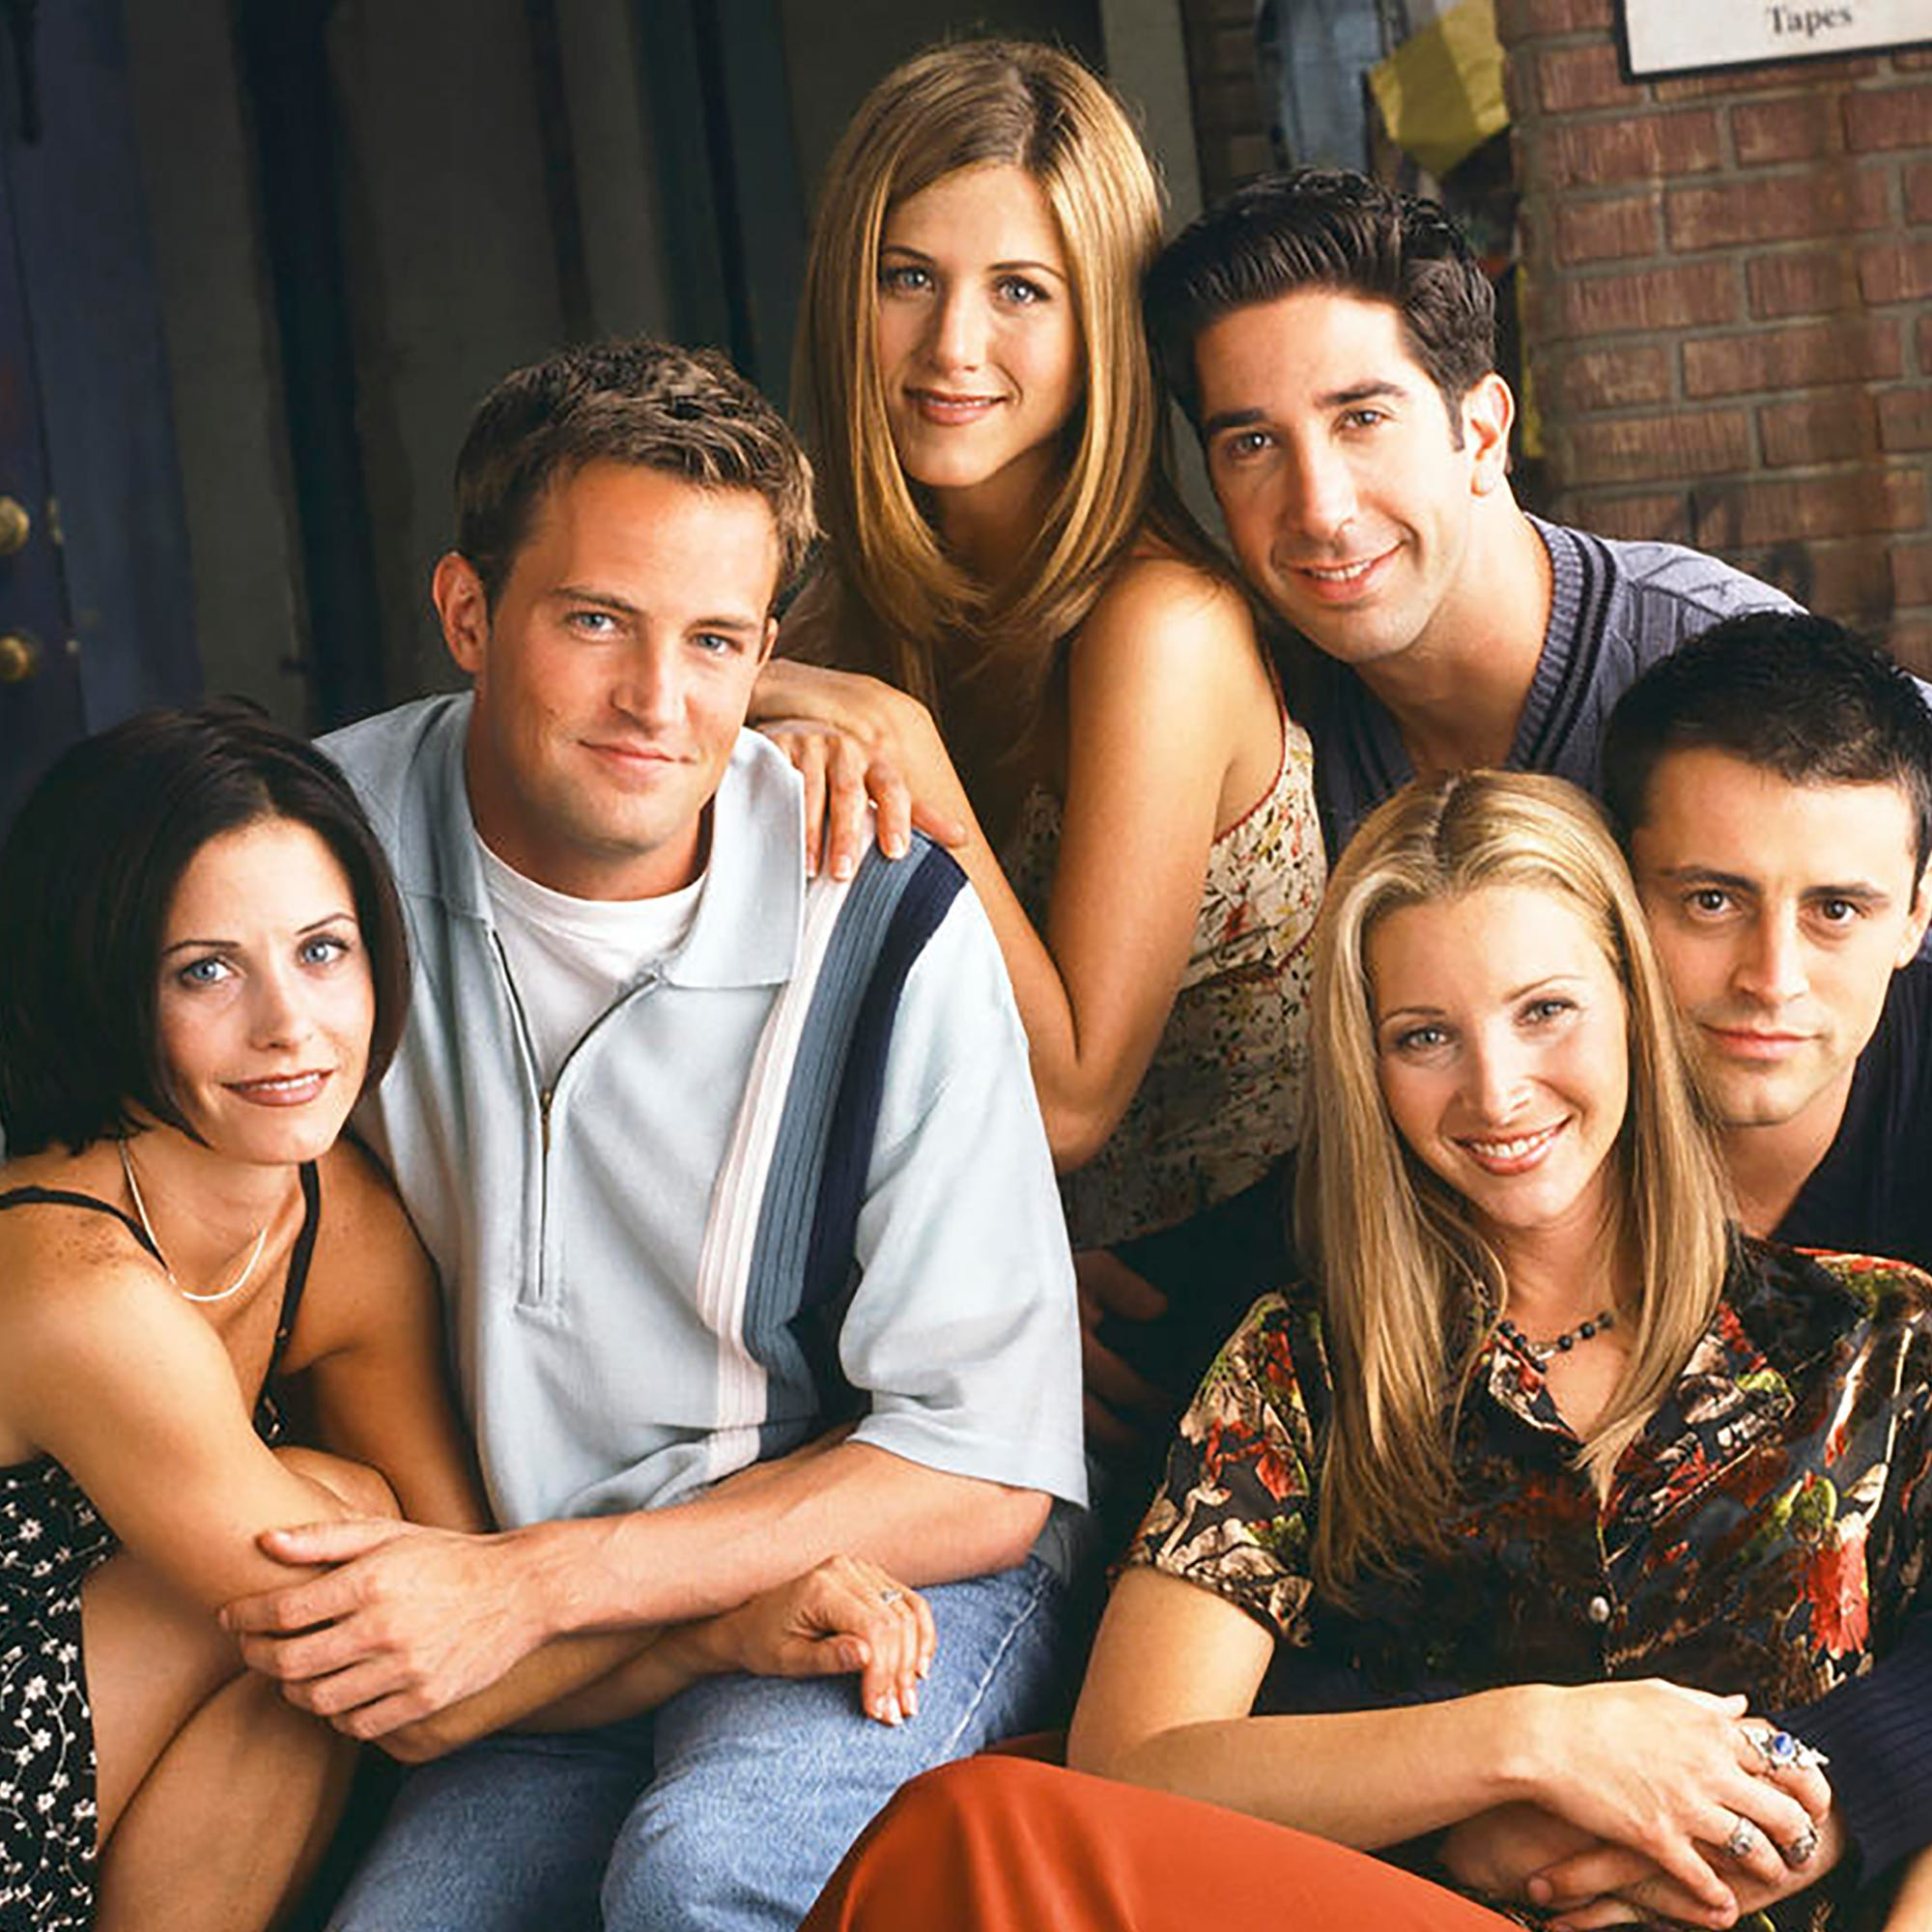 Friends hot mom 3gp Friends Guest Stars Best Celebrity Cameo Appearances